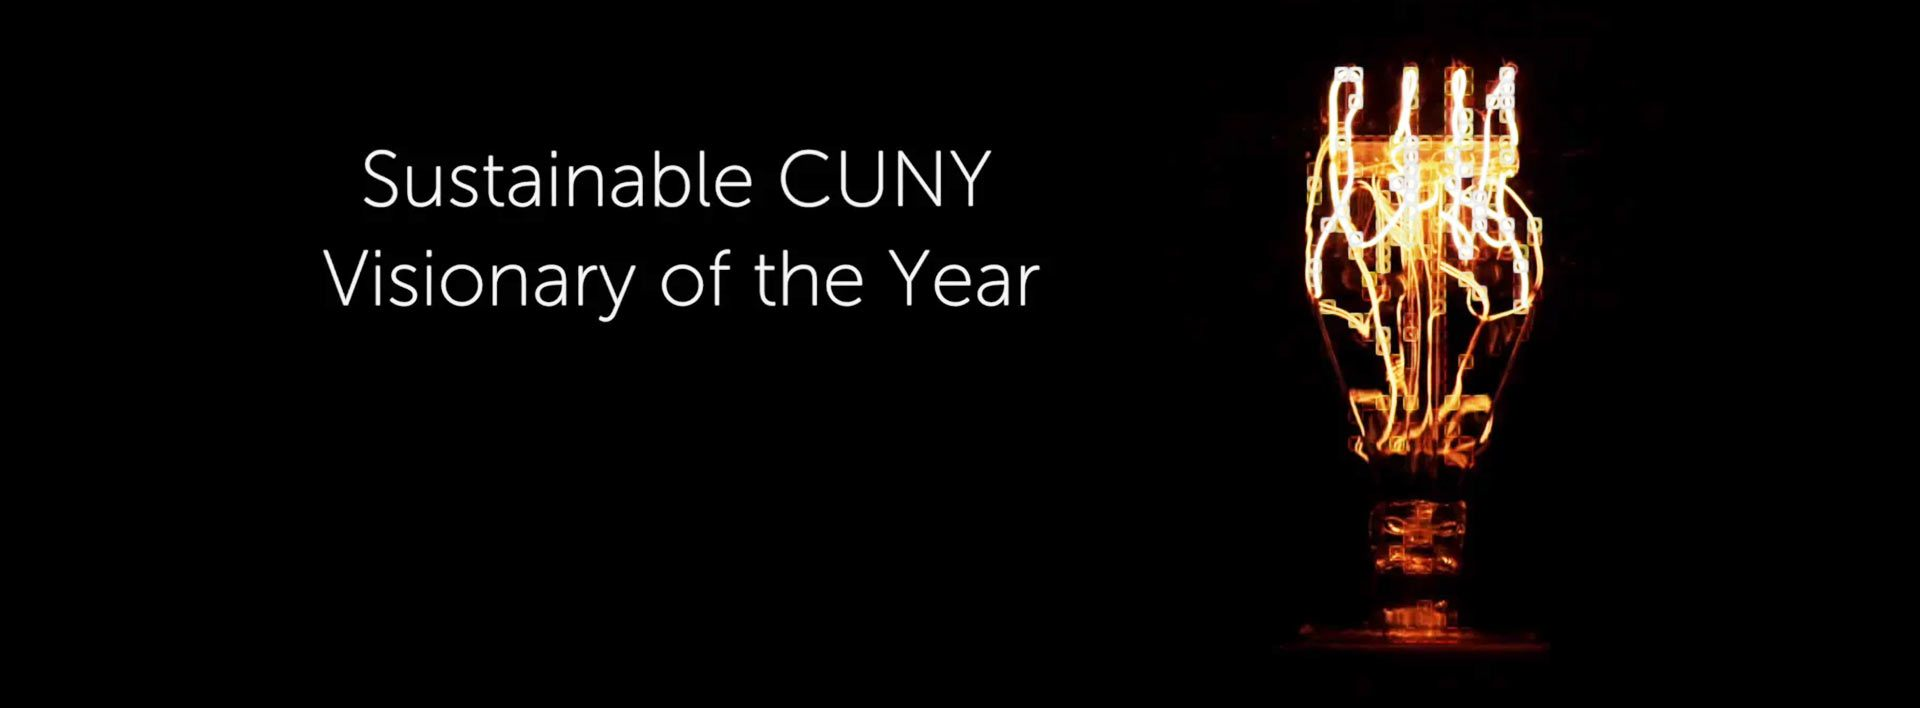 Sustainable CUNY Visionary of the Year